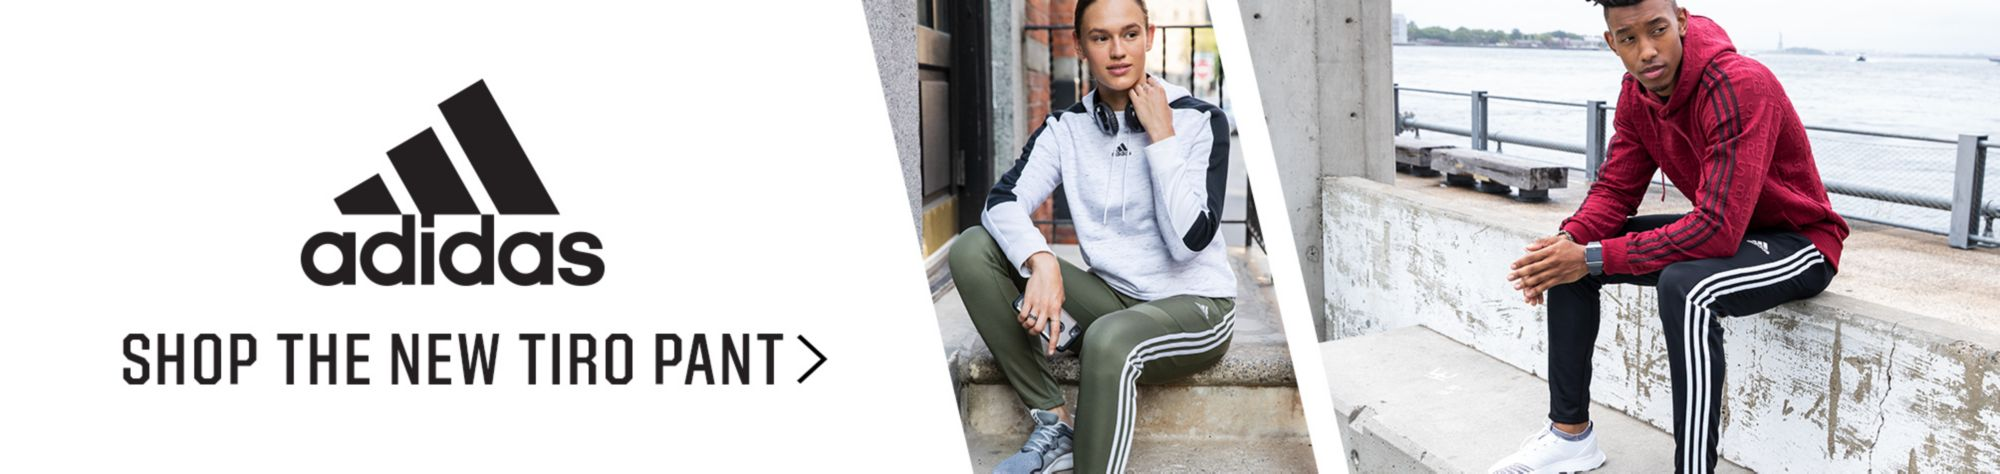 Shop the New adidas Tiro Pant